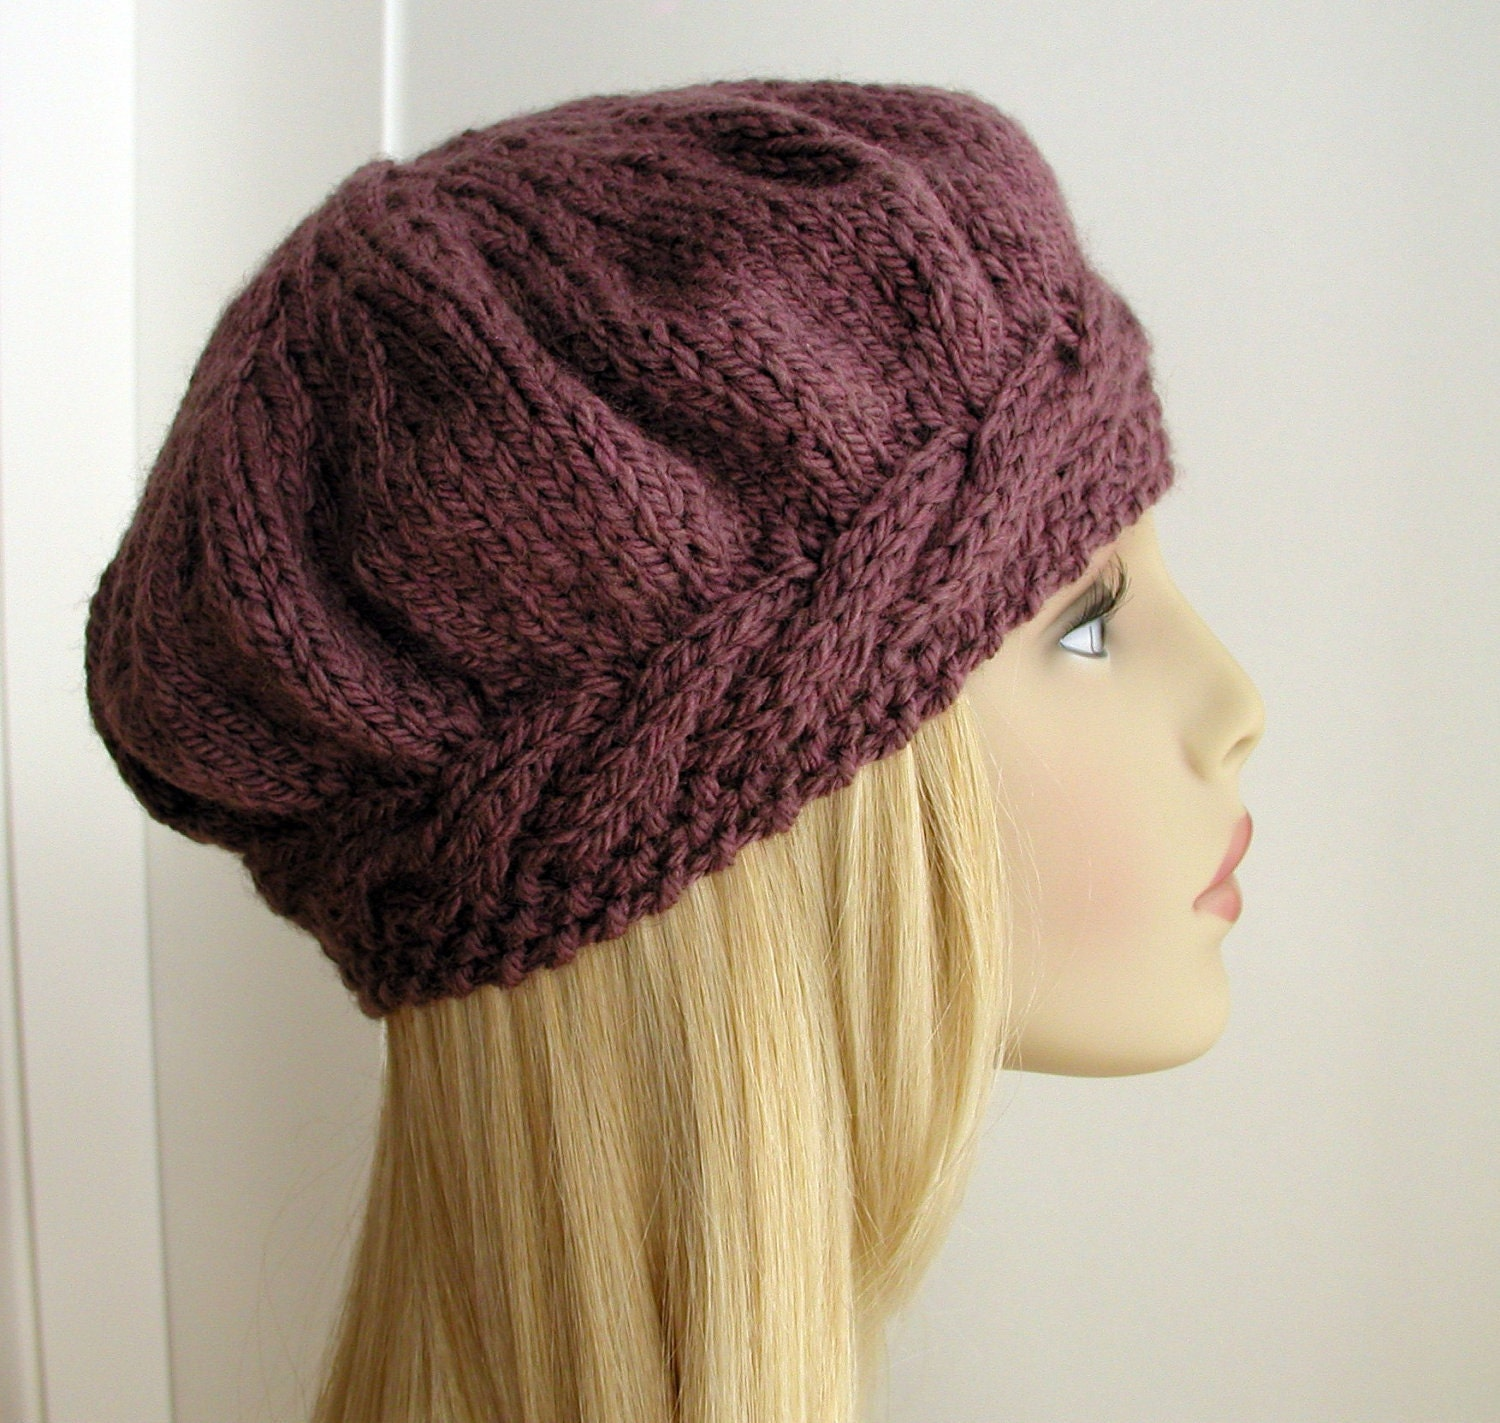 Knitting Pattern Hat Beret : Beret Tam Purple Plum Cable Hat Knitted by handknittedthings